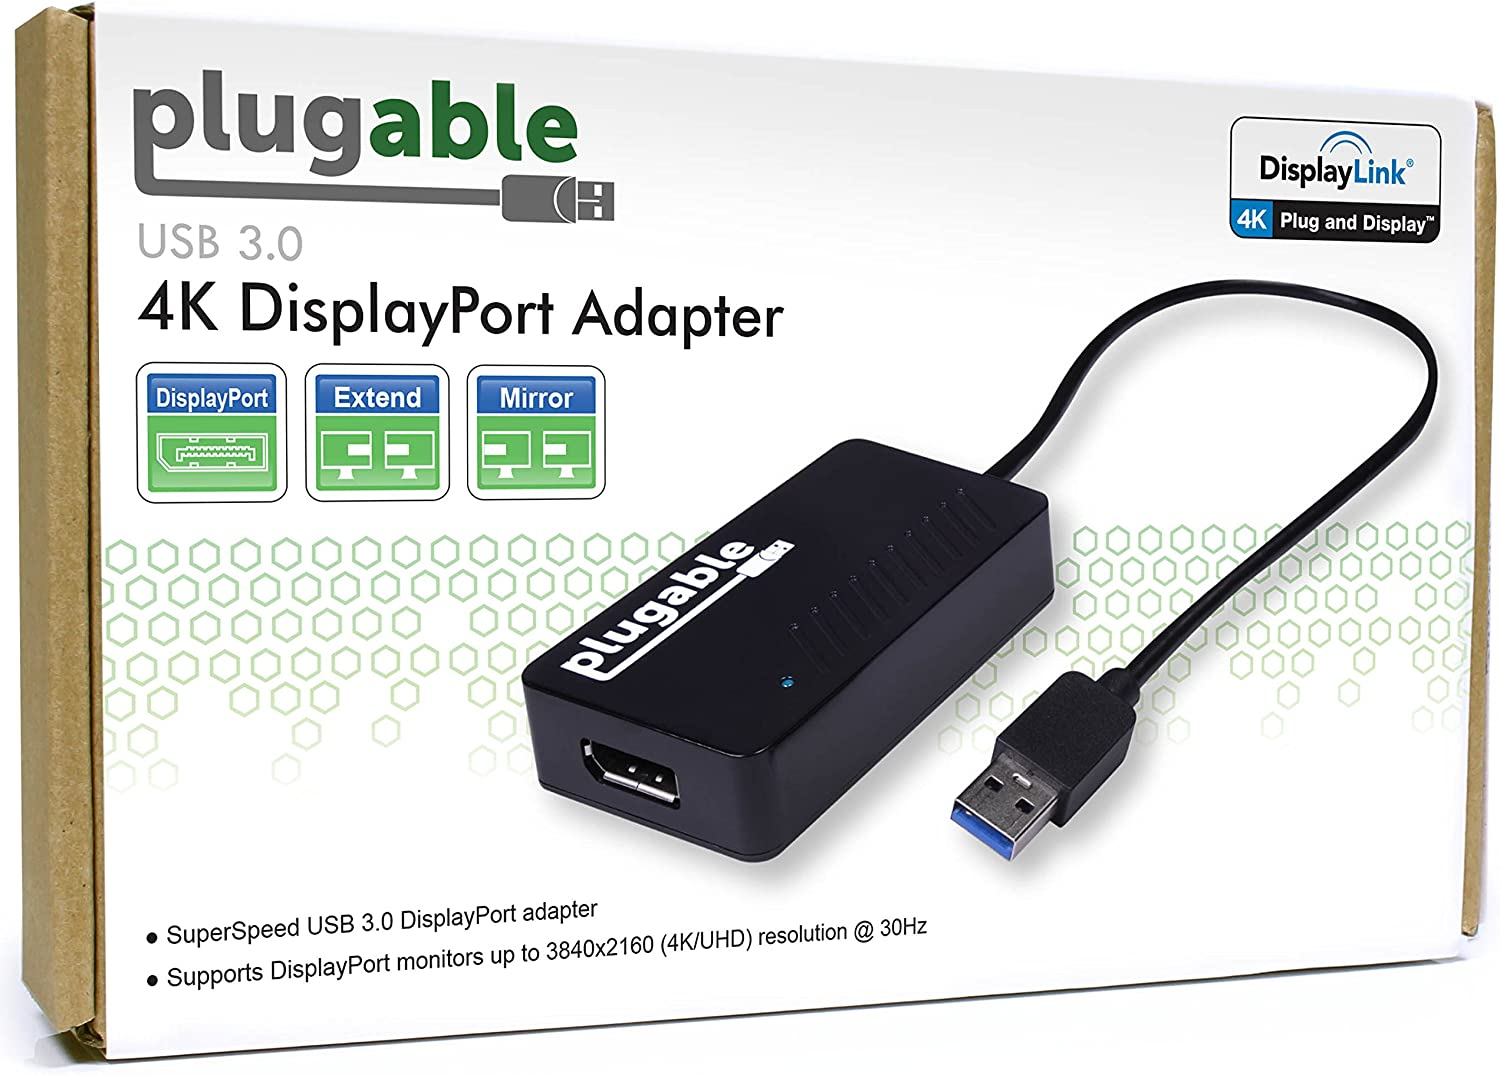 4K @ 30Hz DisplayPort to HDMI Plugable Monitor Adapter